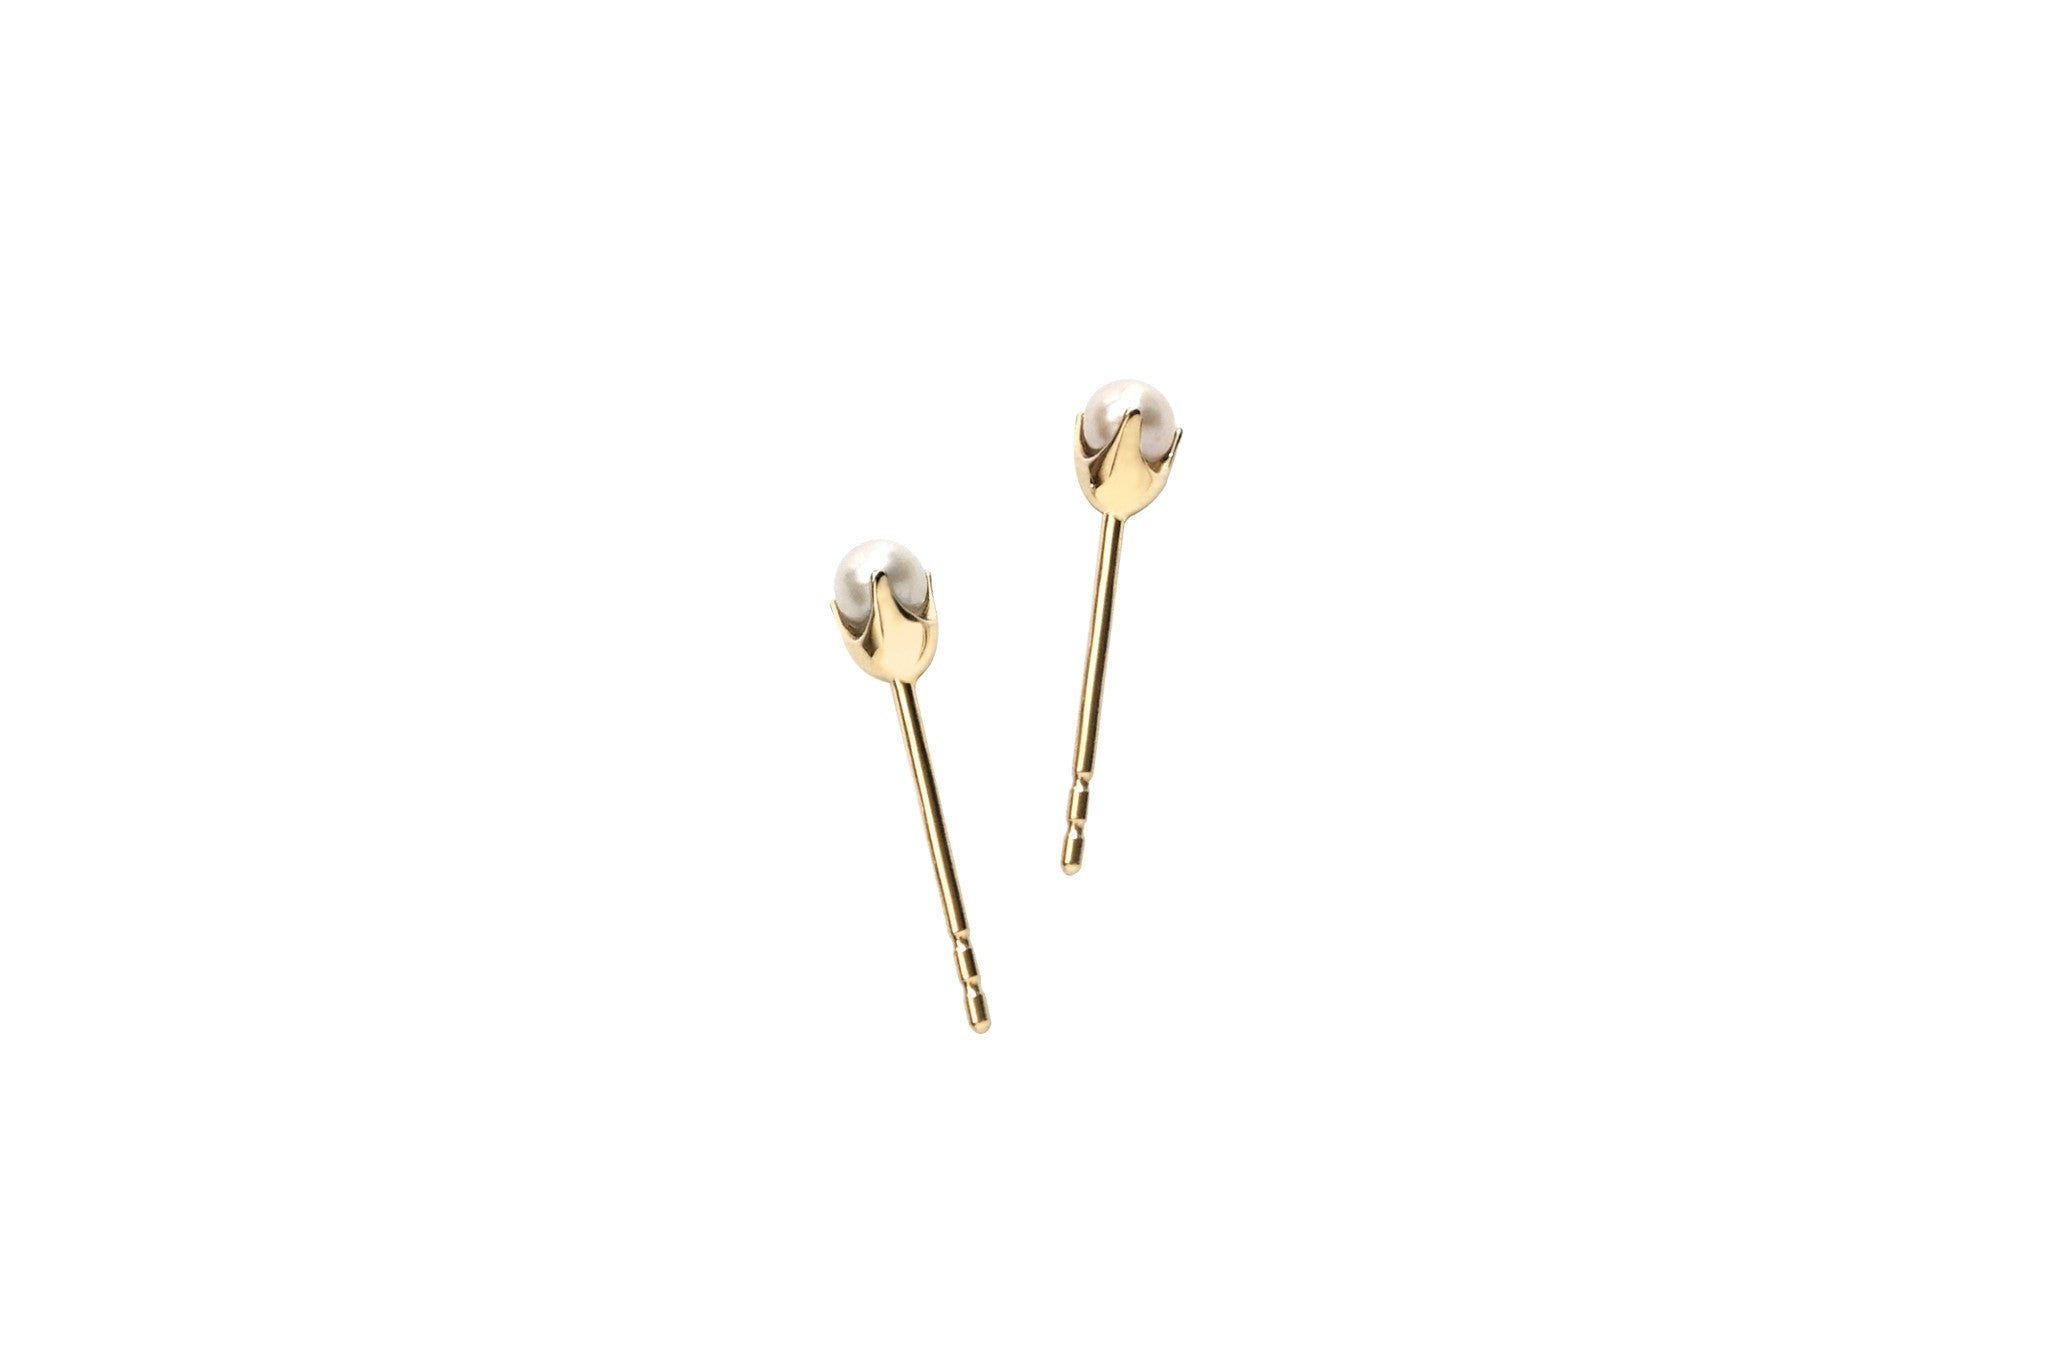 14k Gold Small Pearl Stud Earrings E2333